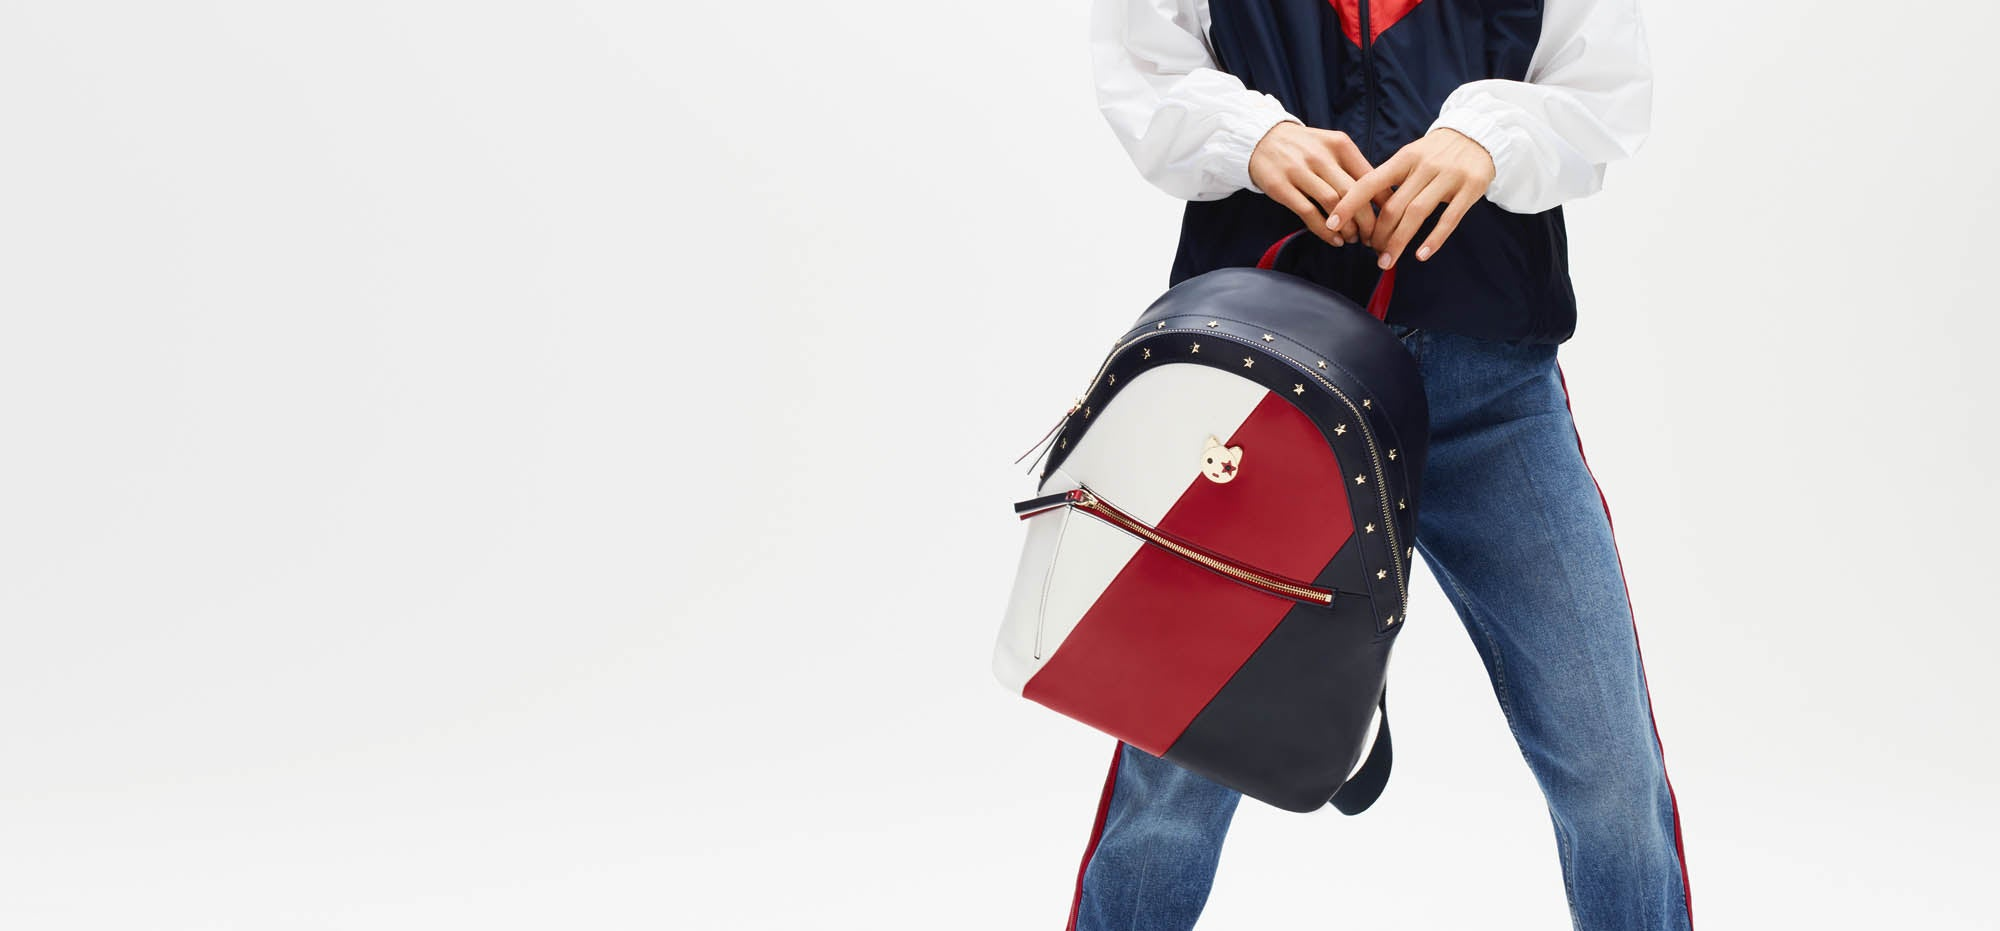 The backpack. One of many hands-free favorites for all the places you'll go. Model holds a red white and blue backpack.